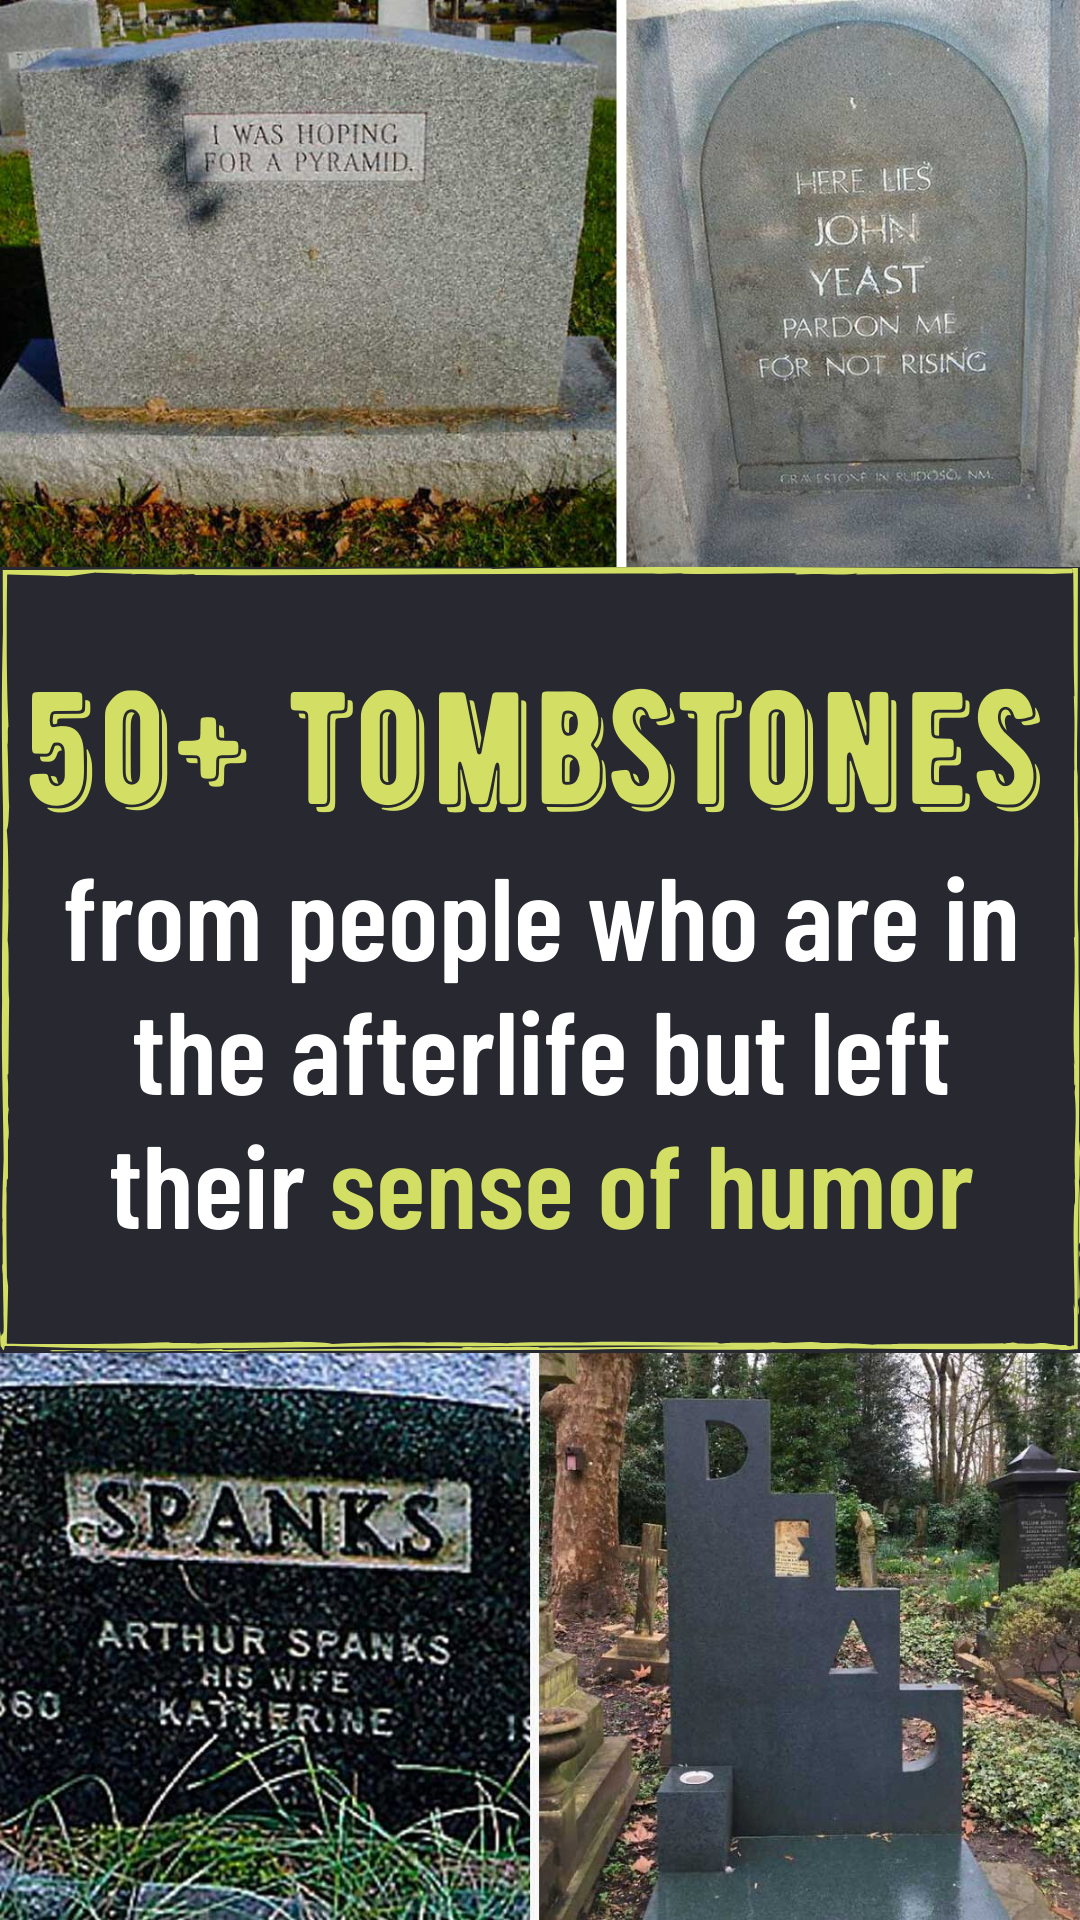 50+ tombstones from people who are in the afterlife but left their sense of humor